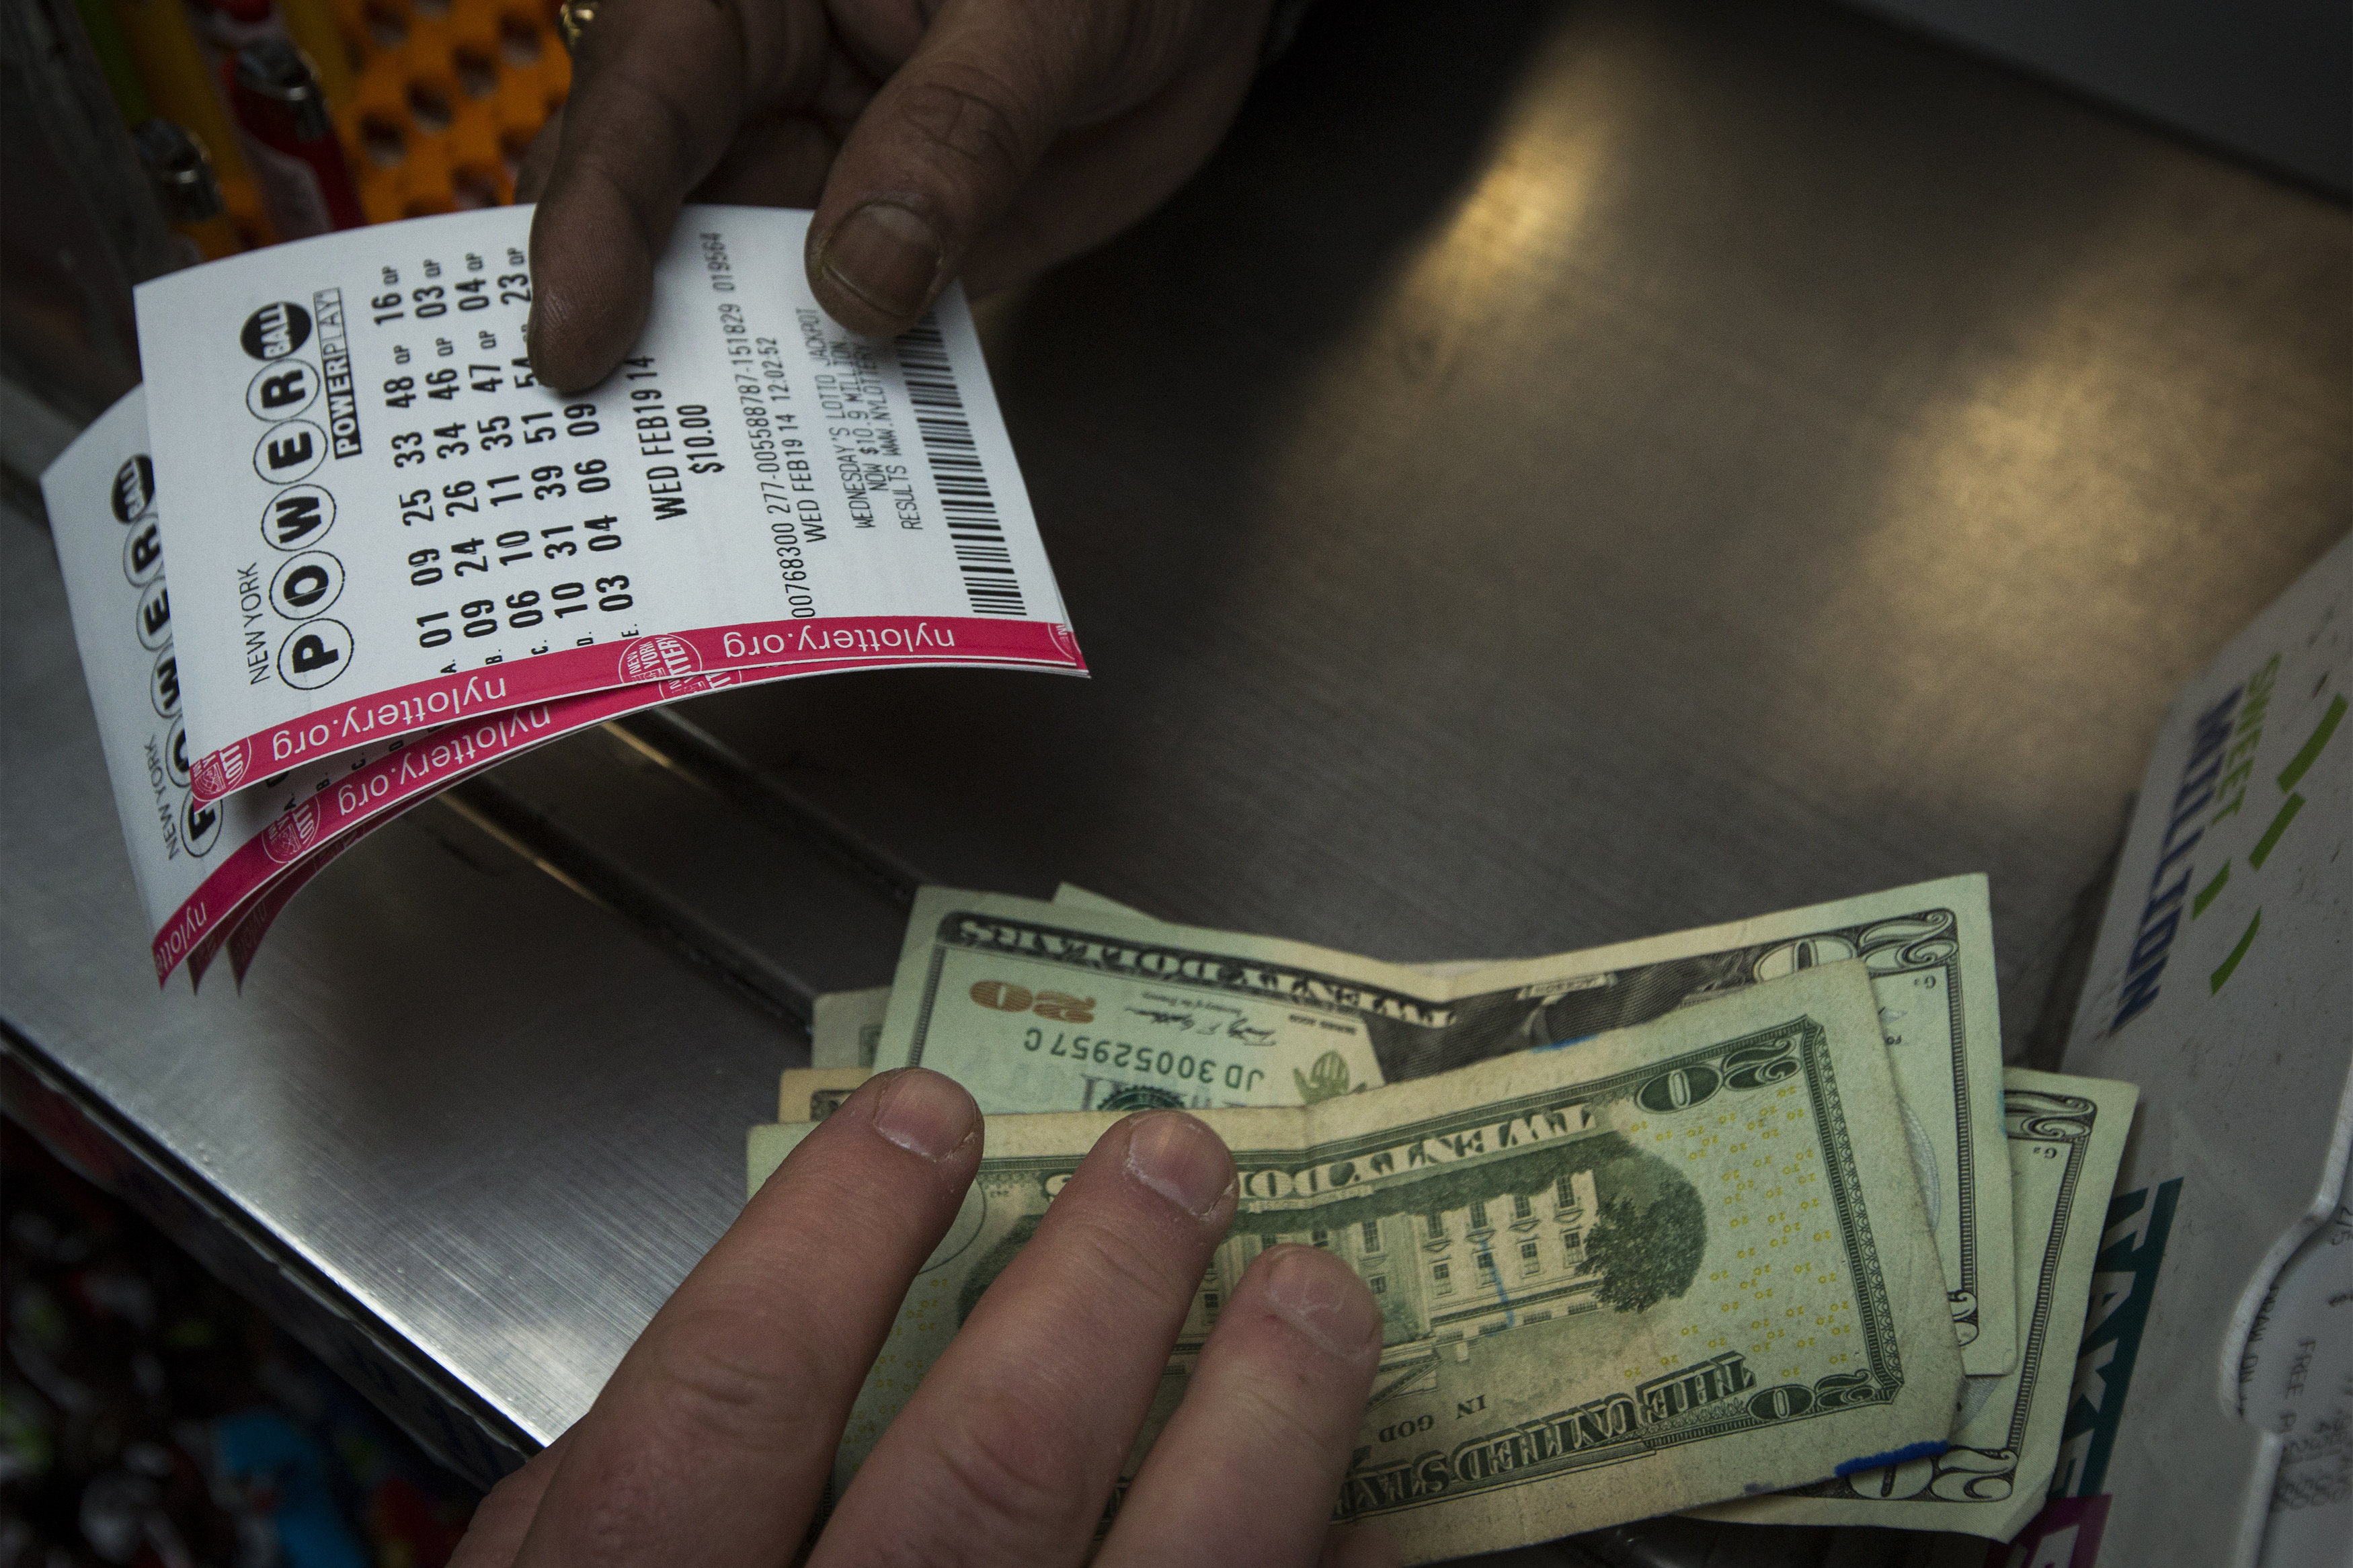 A man purchases New York State Lottery tickets.